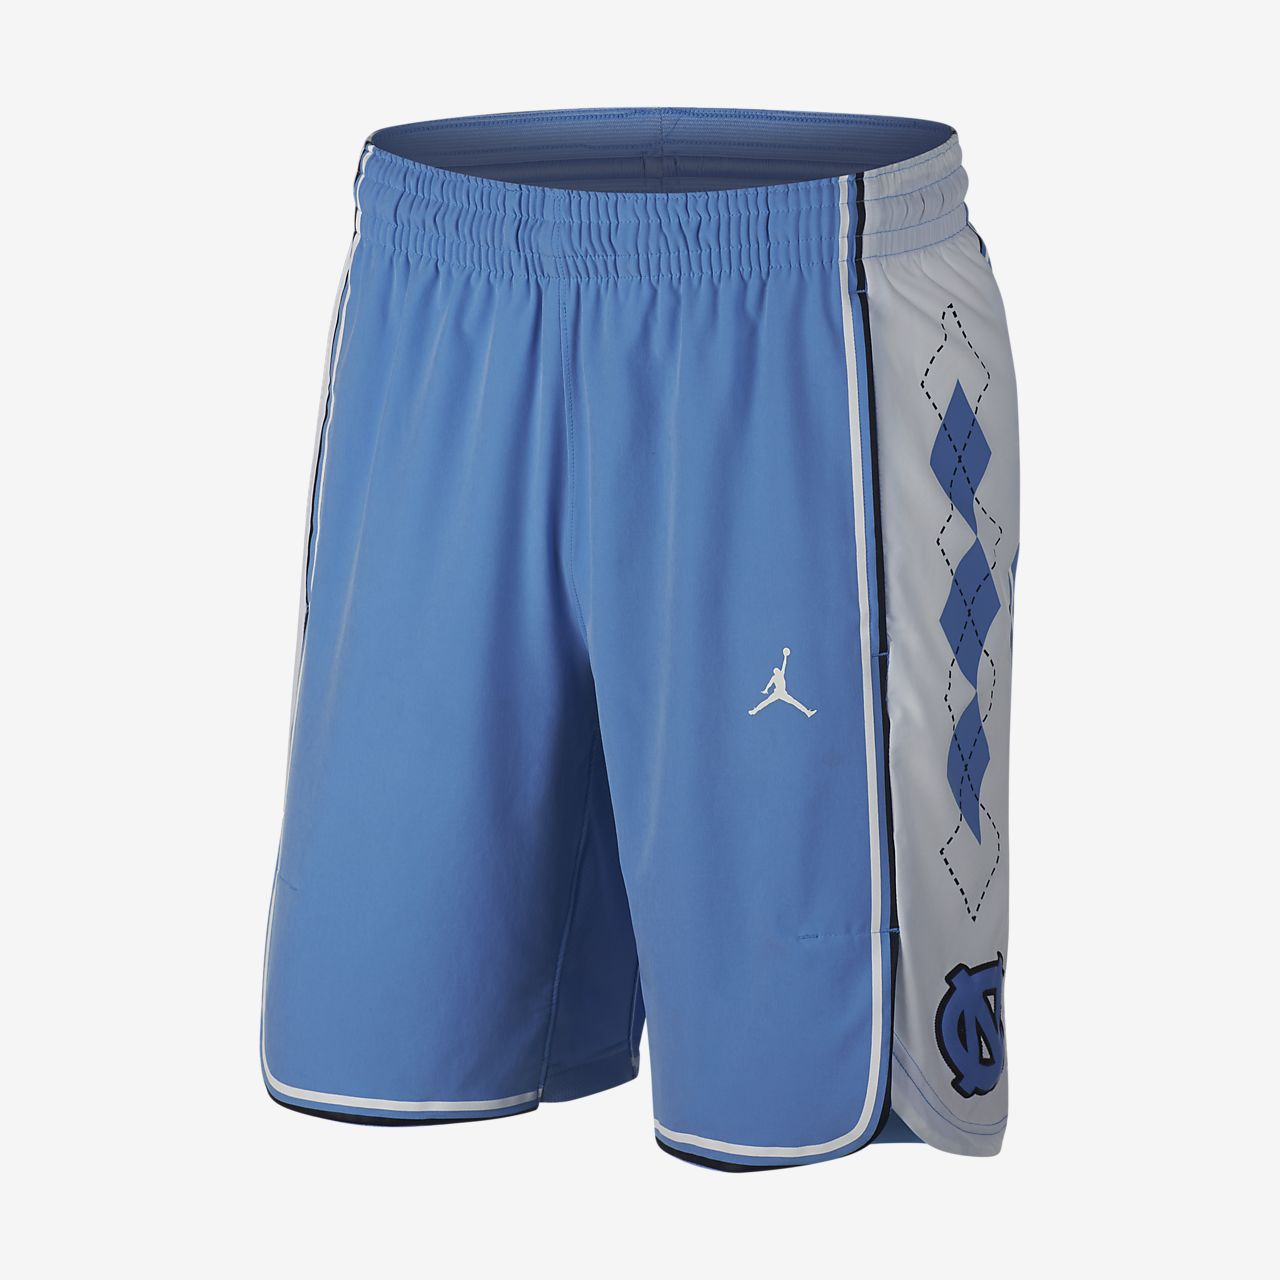 3f9570395d0017 Jordan College Authentic (UNC) Men s Basketball Shorts . Nike.com